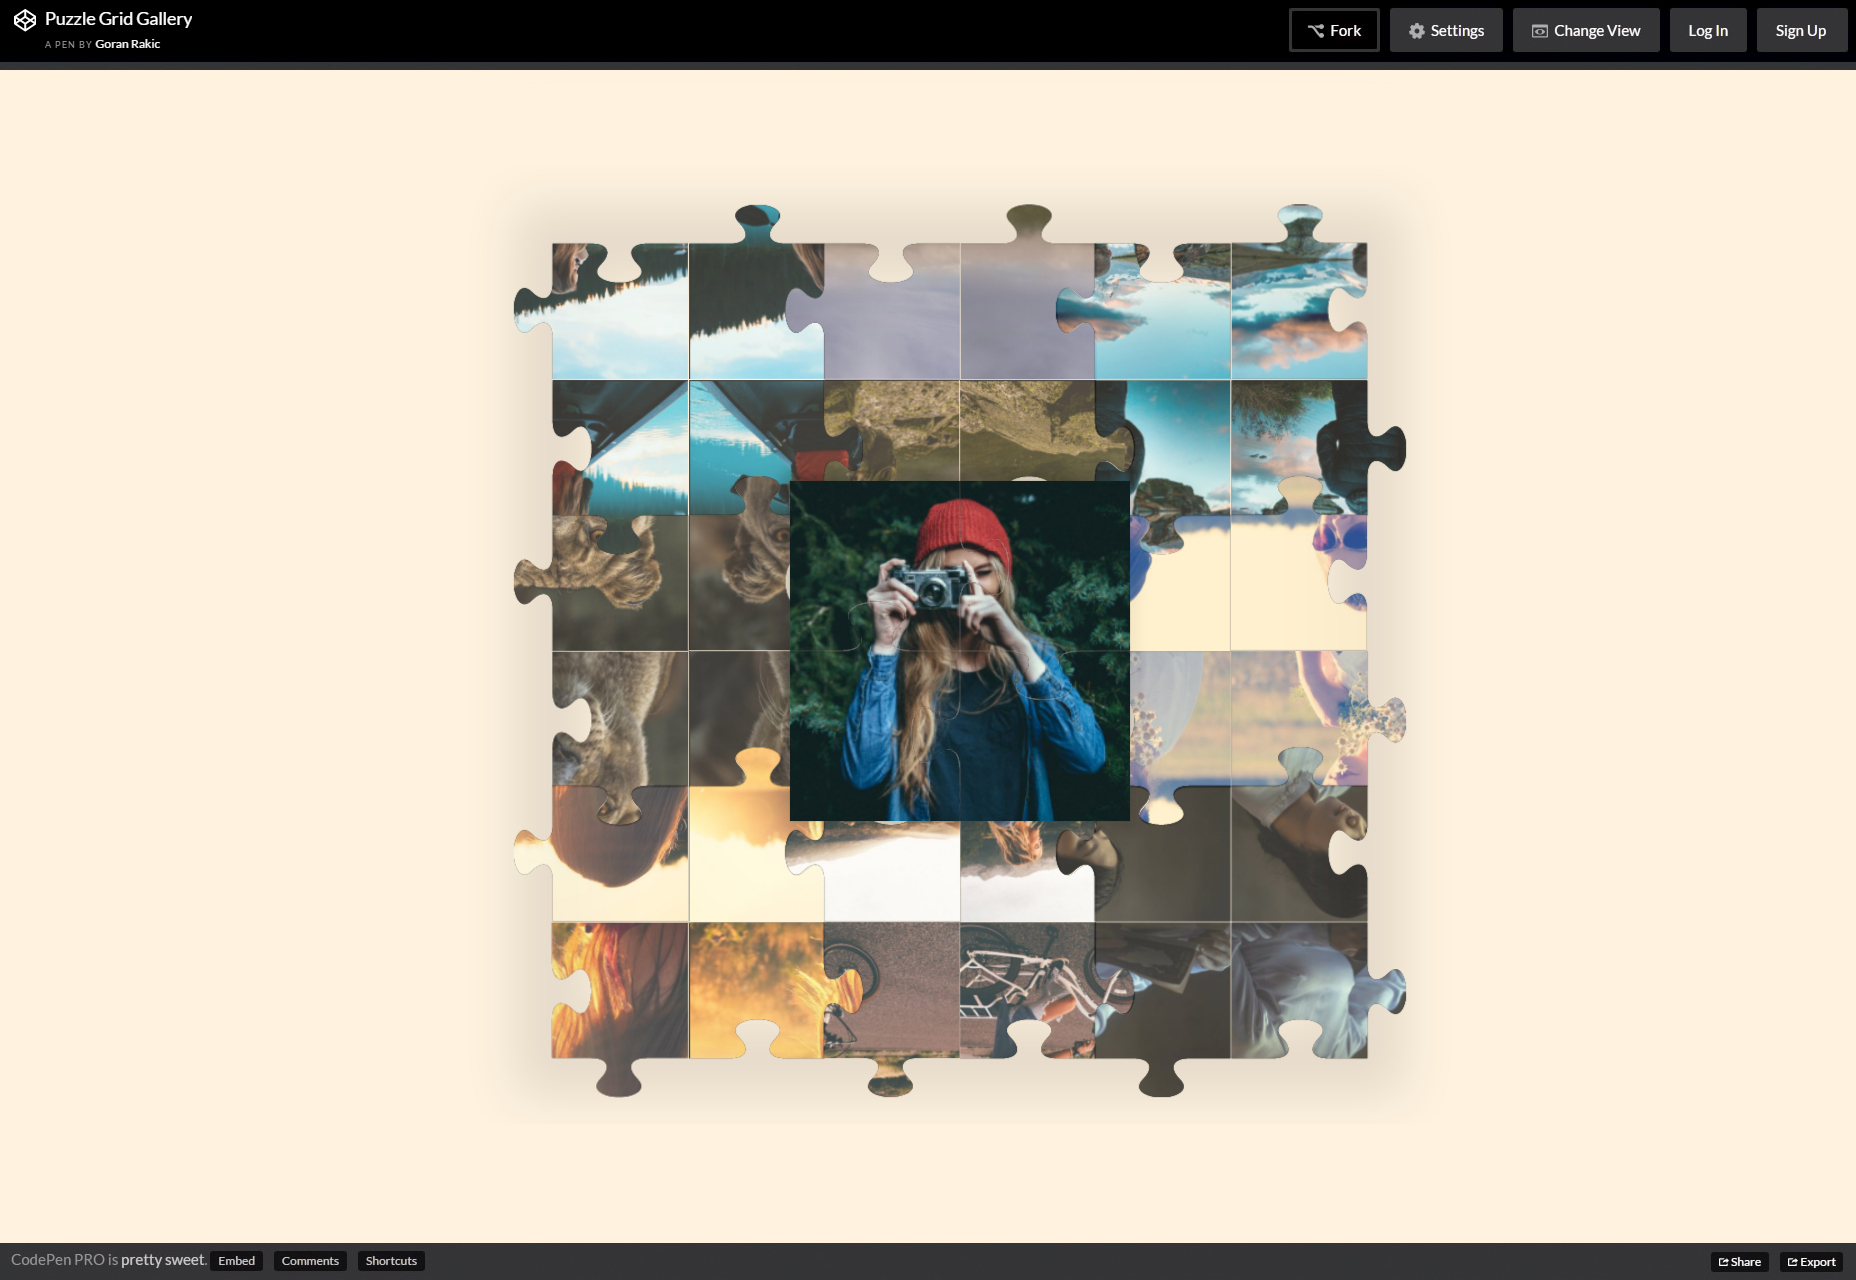 css-animated-puzzle-hover-grid-gallery-